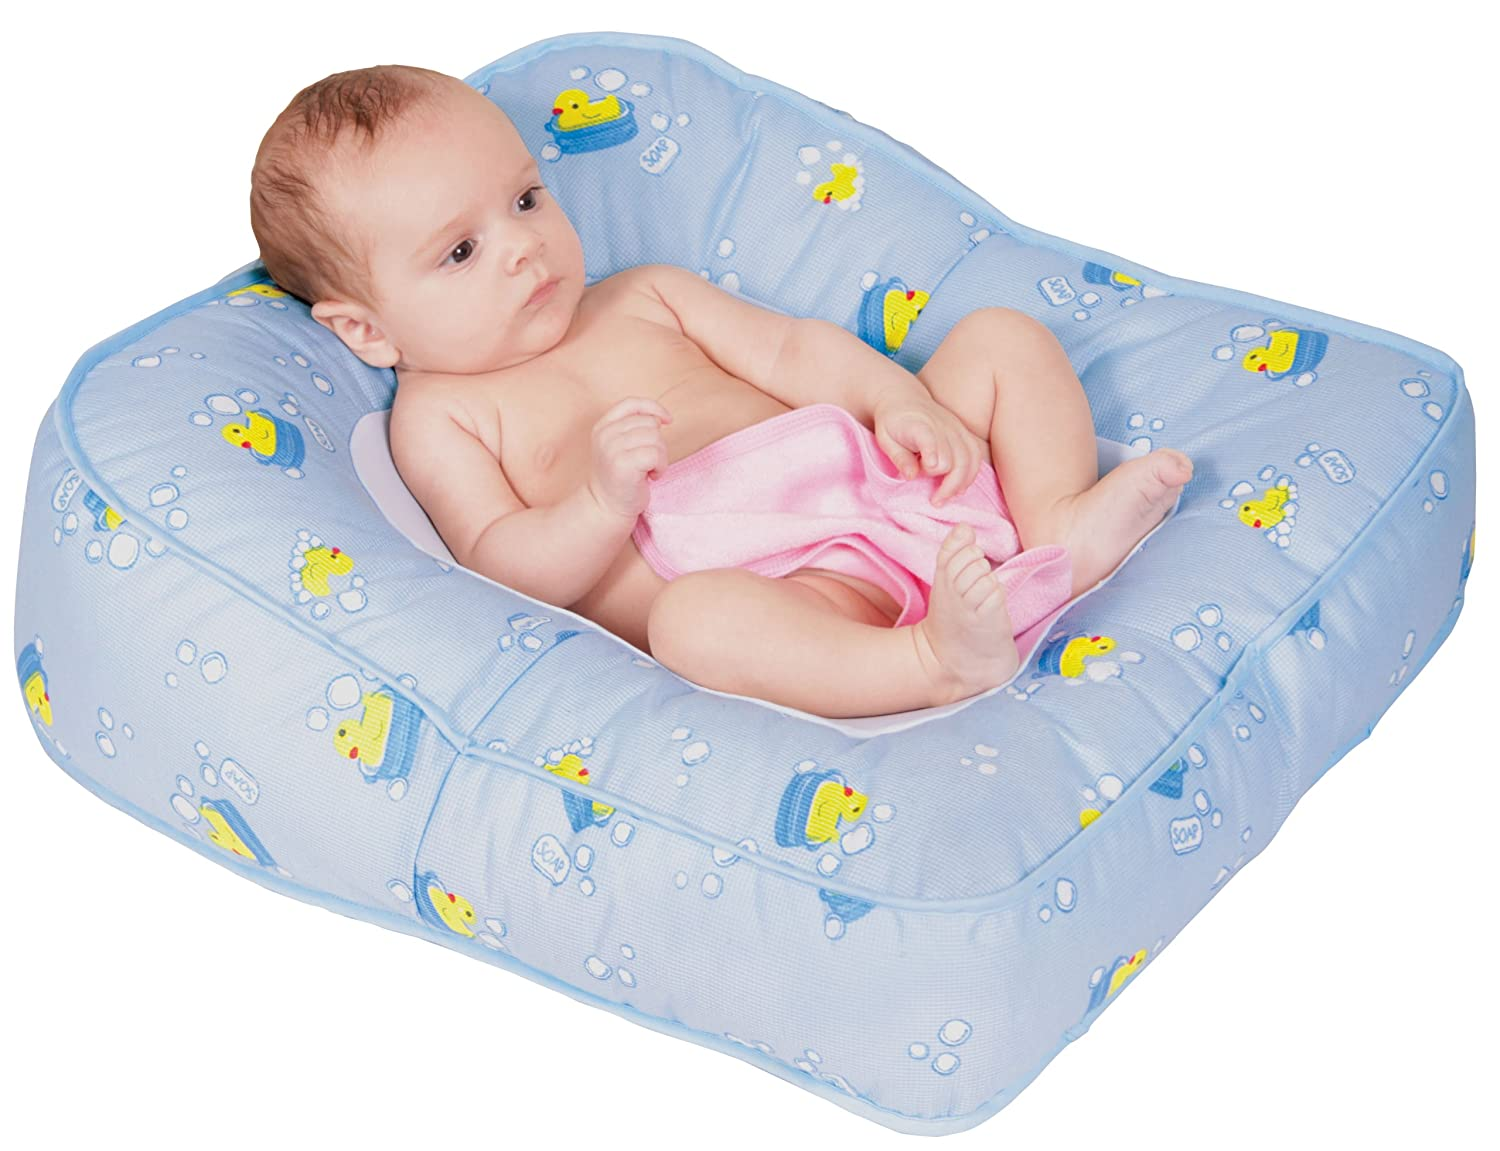 Amazon.com : Leachco Flipper 2-Way Baby Bather, Blue Ducks : Baby ...